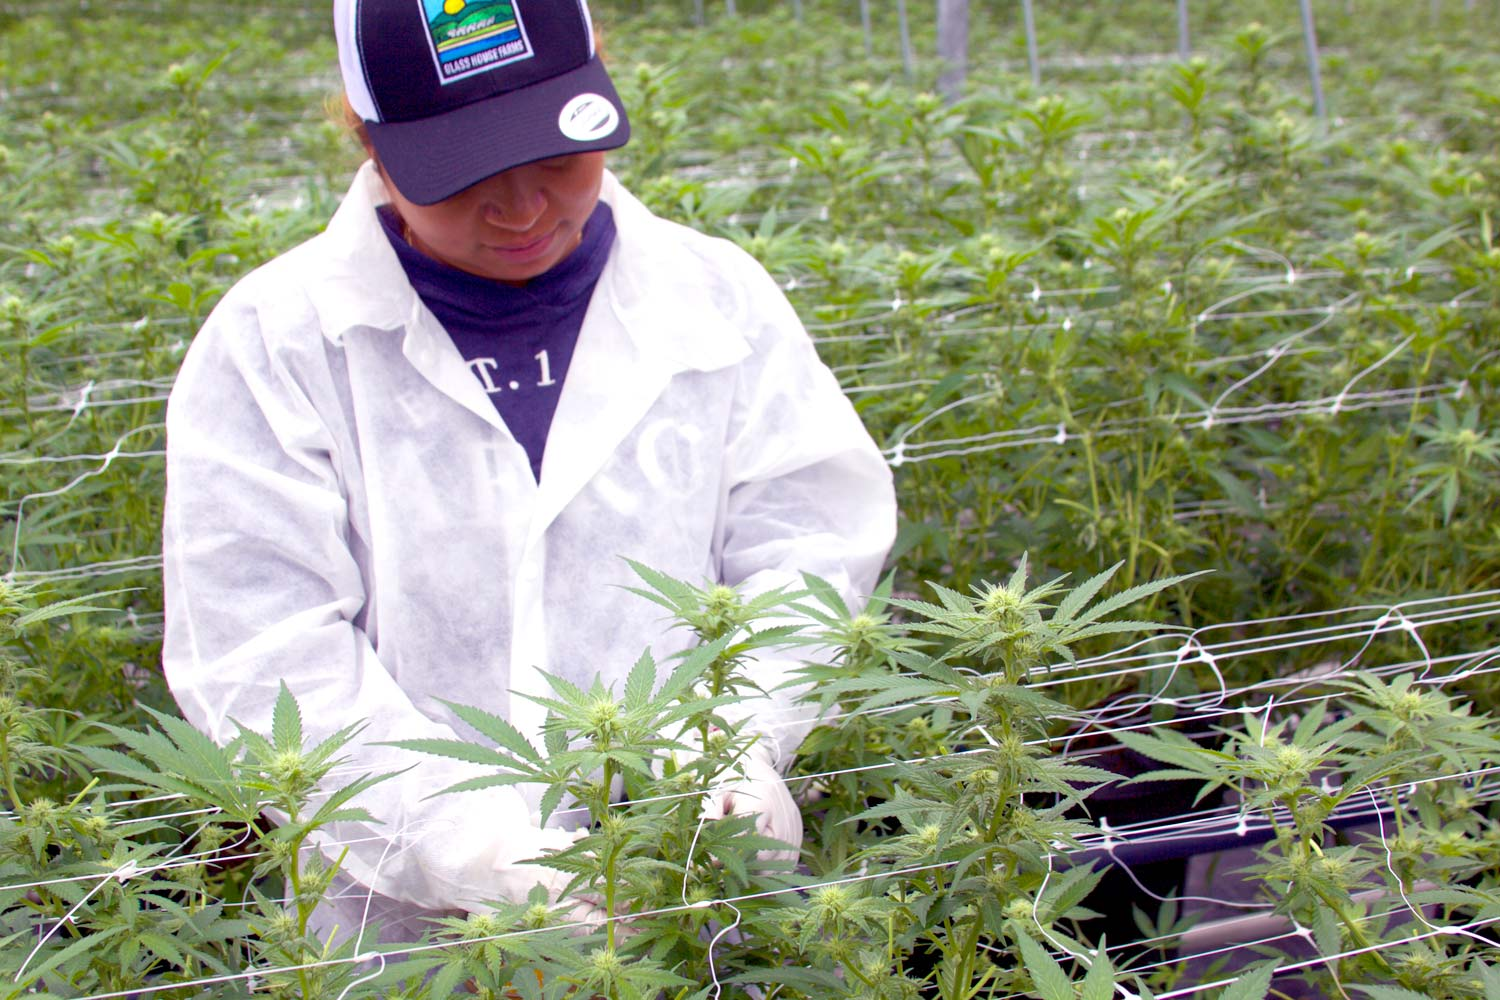 Worker trimming plants